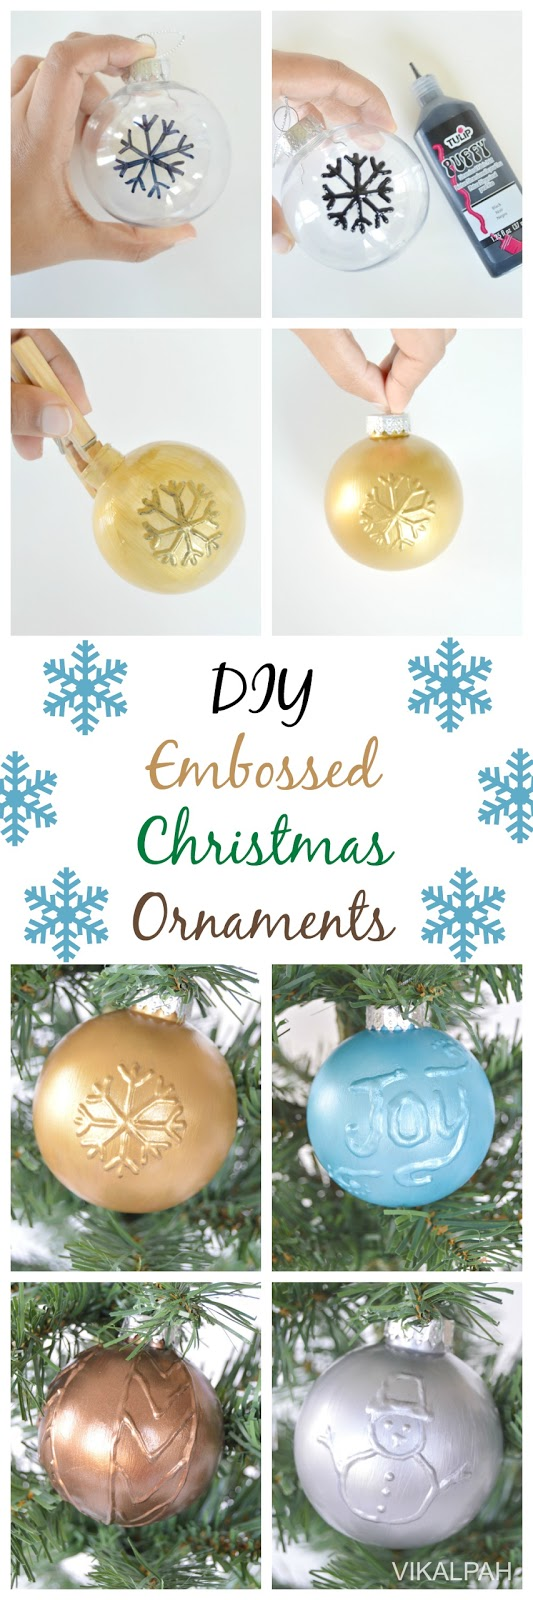 Embossed Christmas ornaments using puffy paint